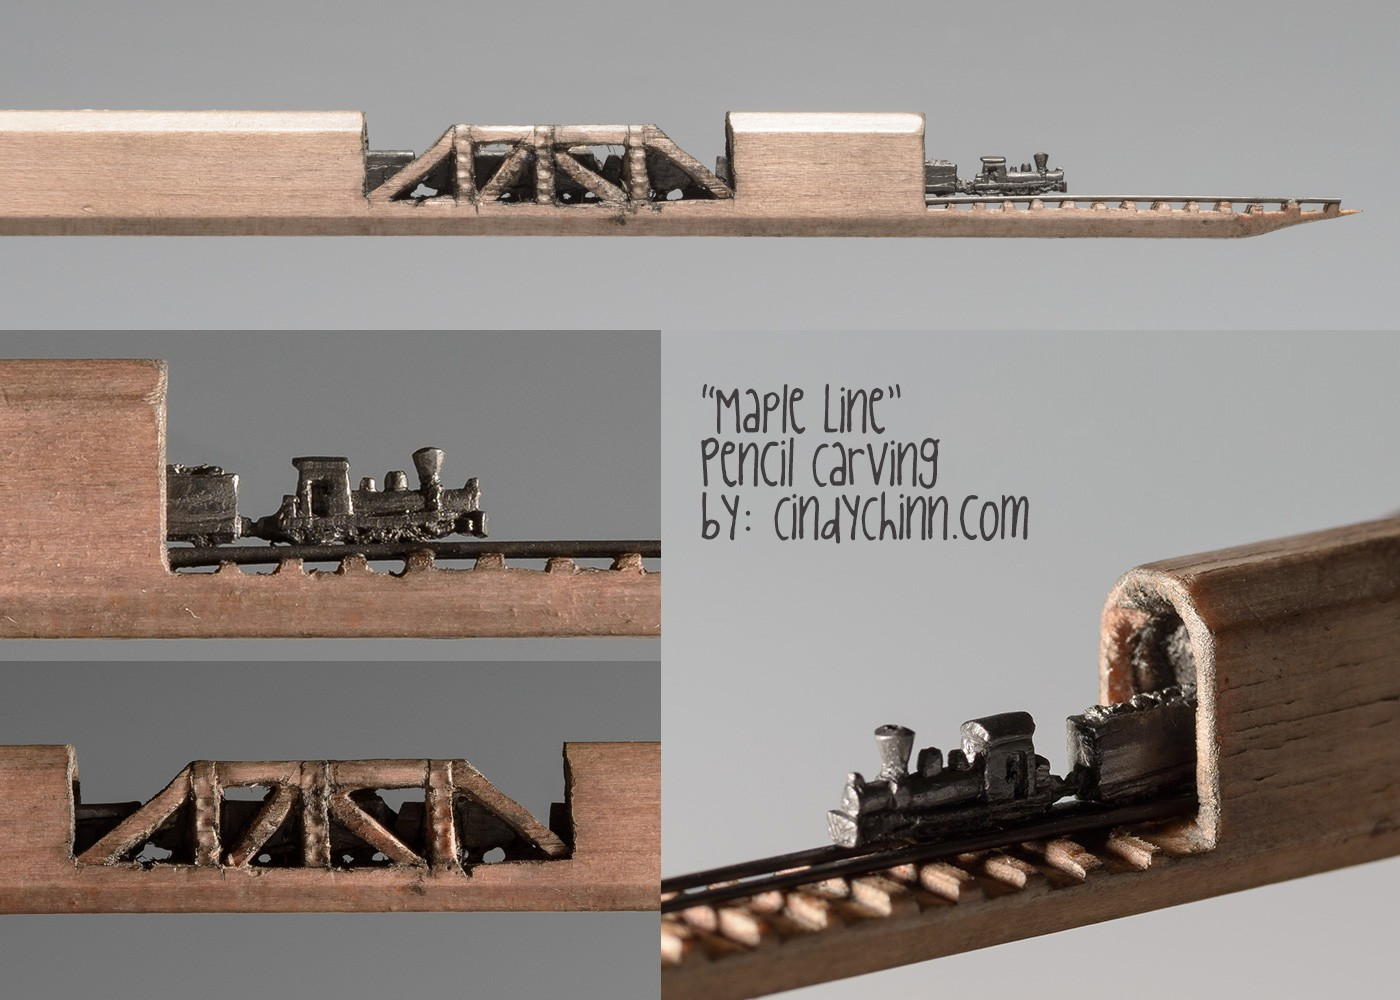 11-Maple-Line-Train-Cindy-Chinn-Miniature-Carvings-of-Pencil-Graphite-www-designstack-co